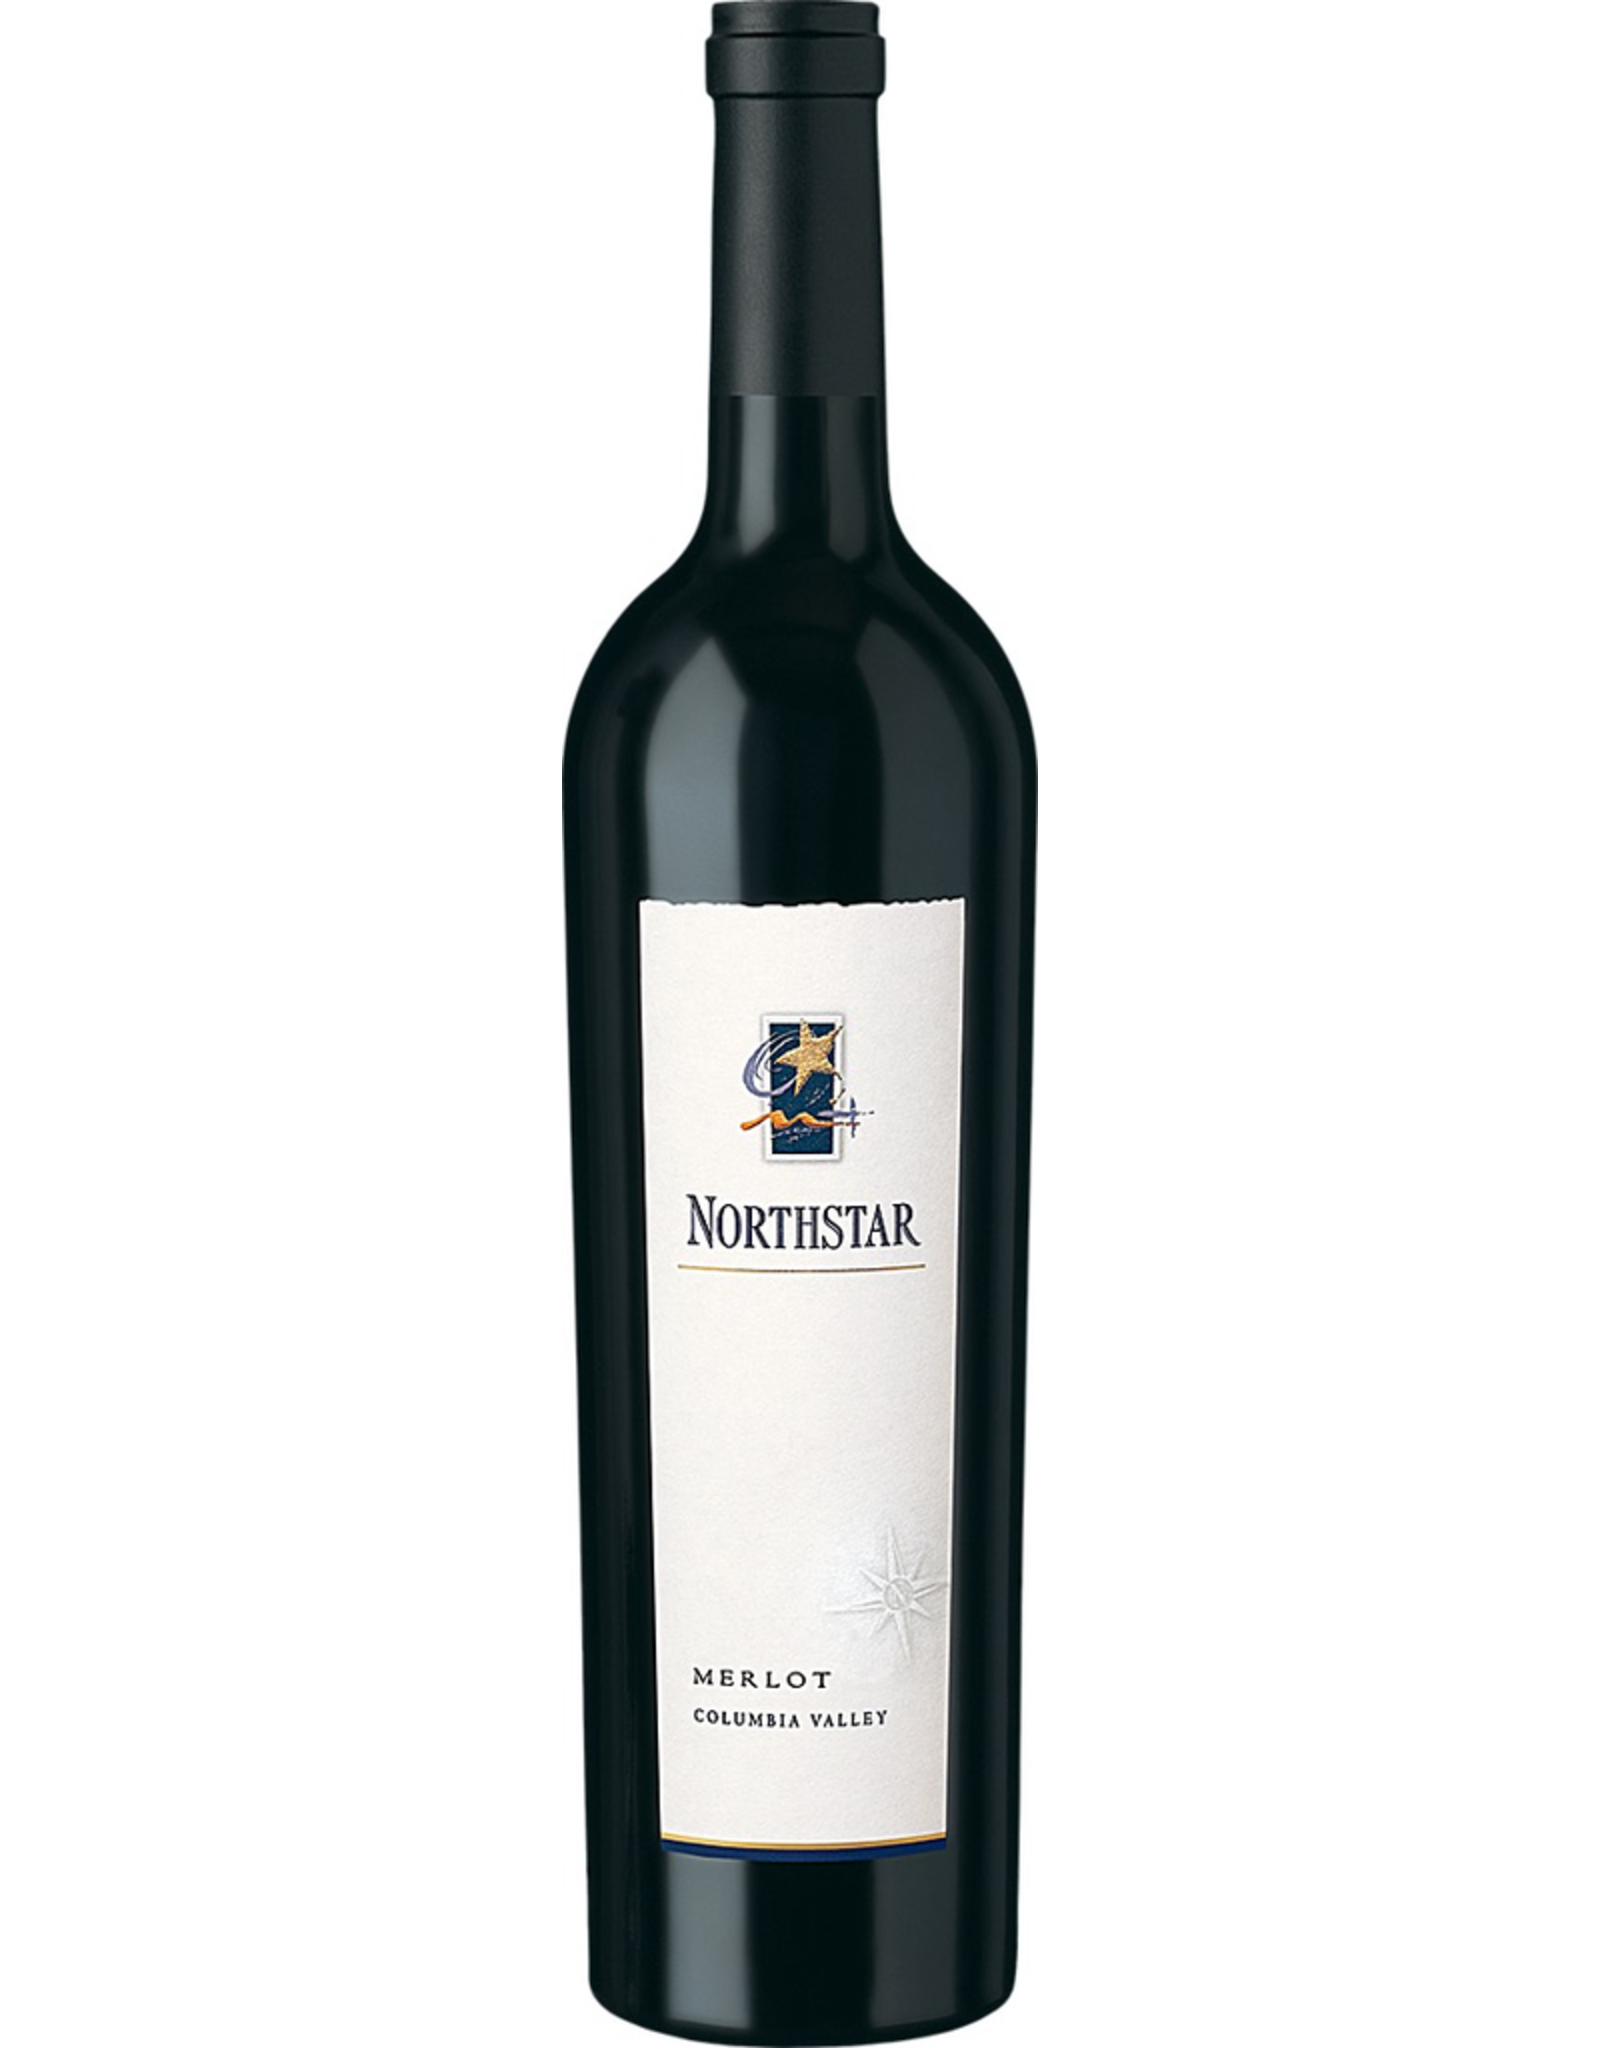 Red Wine 2015, Northstar, Merlot, Multi-regional Blend, Columbia Valley, Washington, 14.8% Alc, CTnr JS91